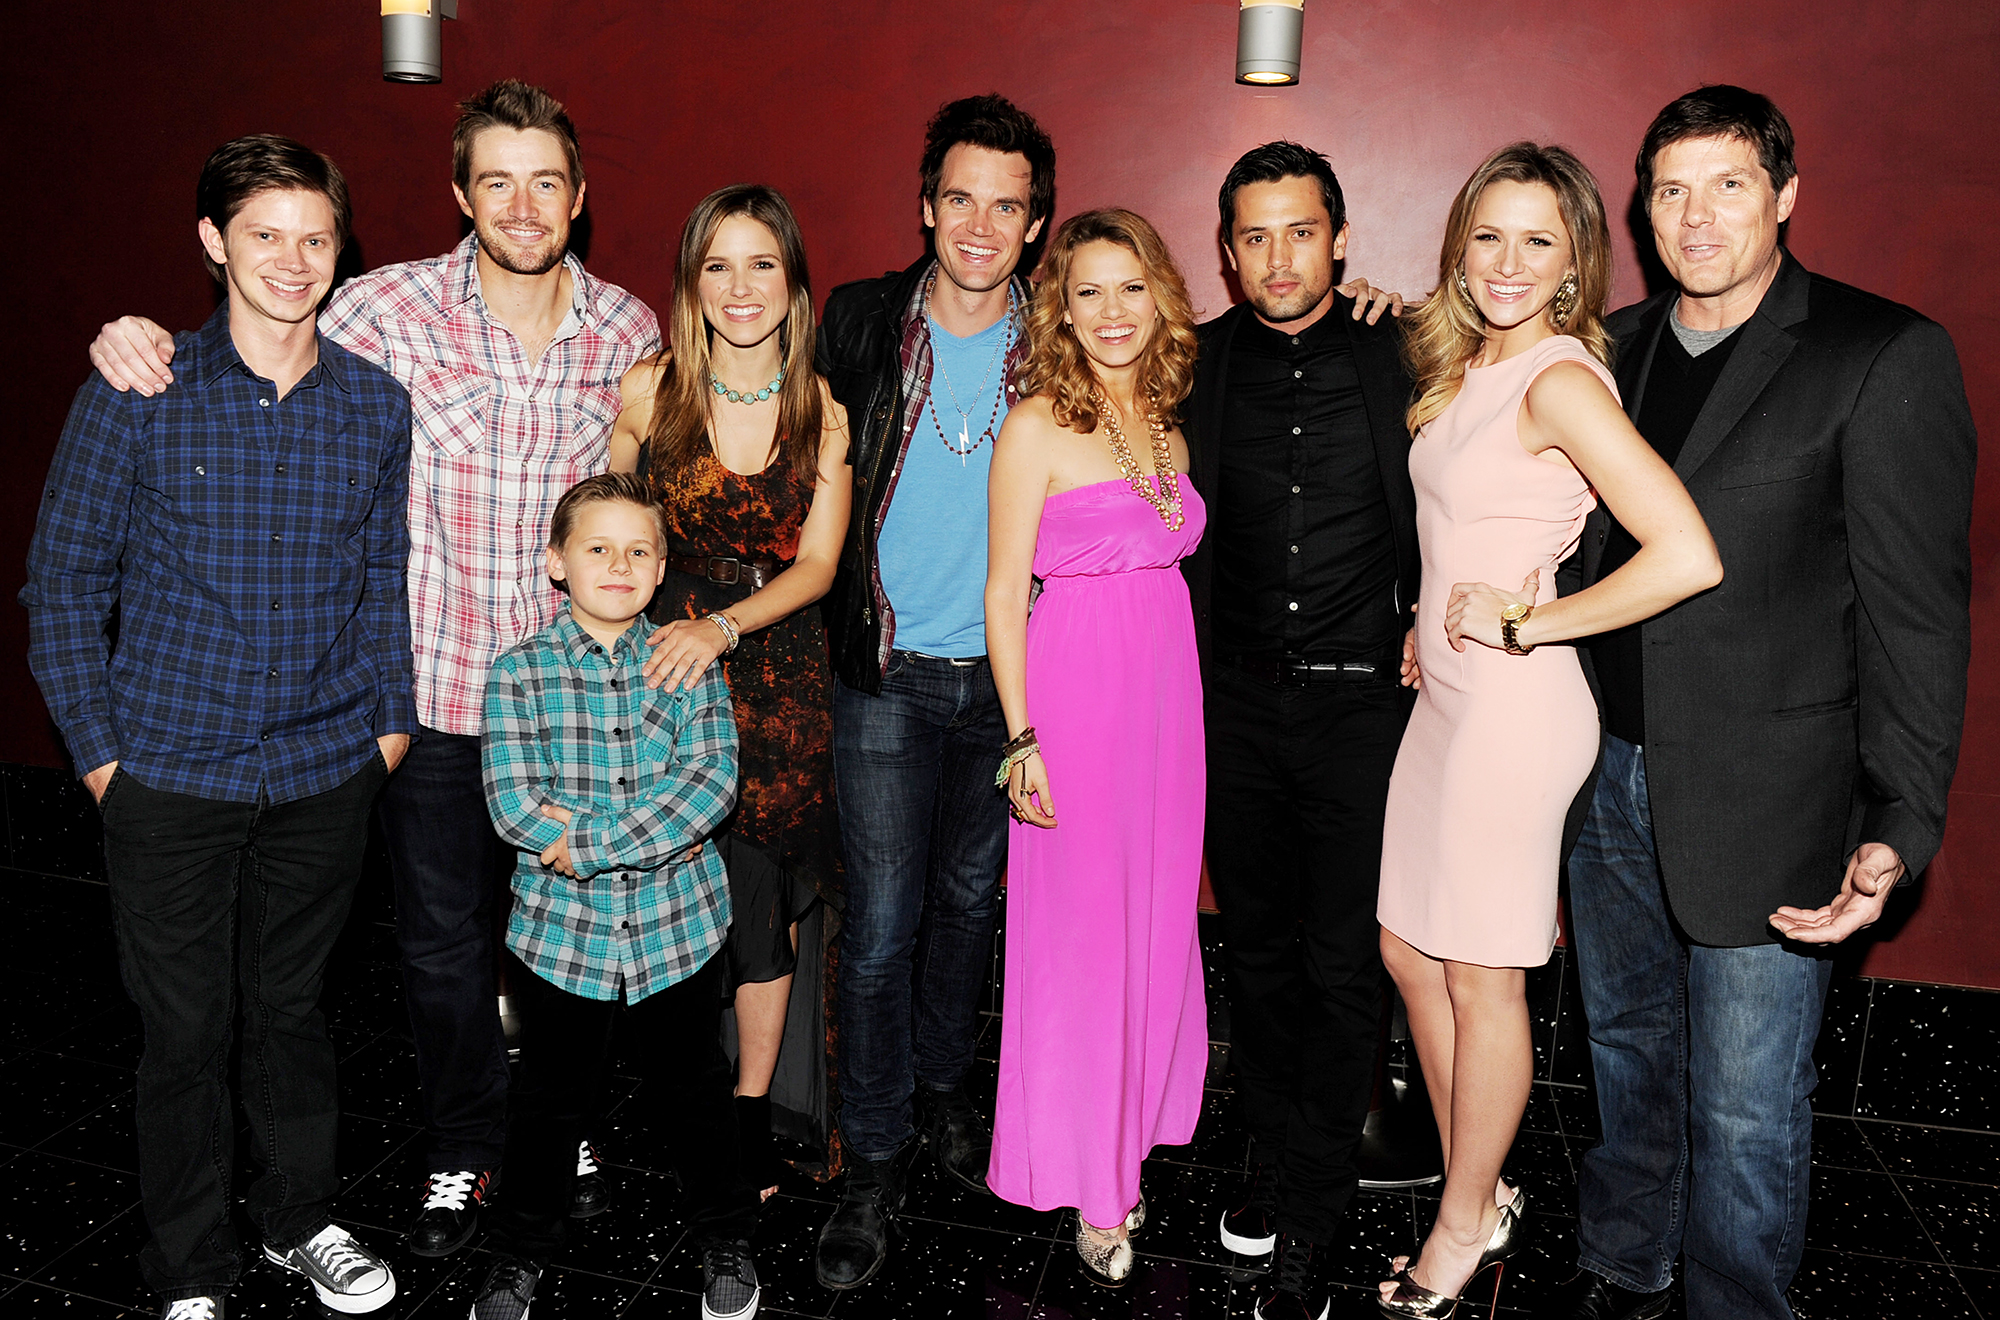 """Paul Johansson Hosts One Tree Hill Reunion Panel - Lee Norris, Robert Buckley, Jackson Brundage, Sophia Bush, Tyler Hilton, Bethany Joy Galeotti, Stephen Colletti, Shantel VanSanten and Paul Johansson pose at The CW's presentation of """"An Evening with One Tree Hill"""" at the Arclighht Theater on January 5, 2011 in Los Angeles, California."""